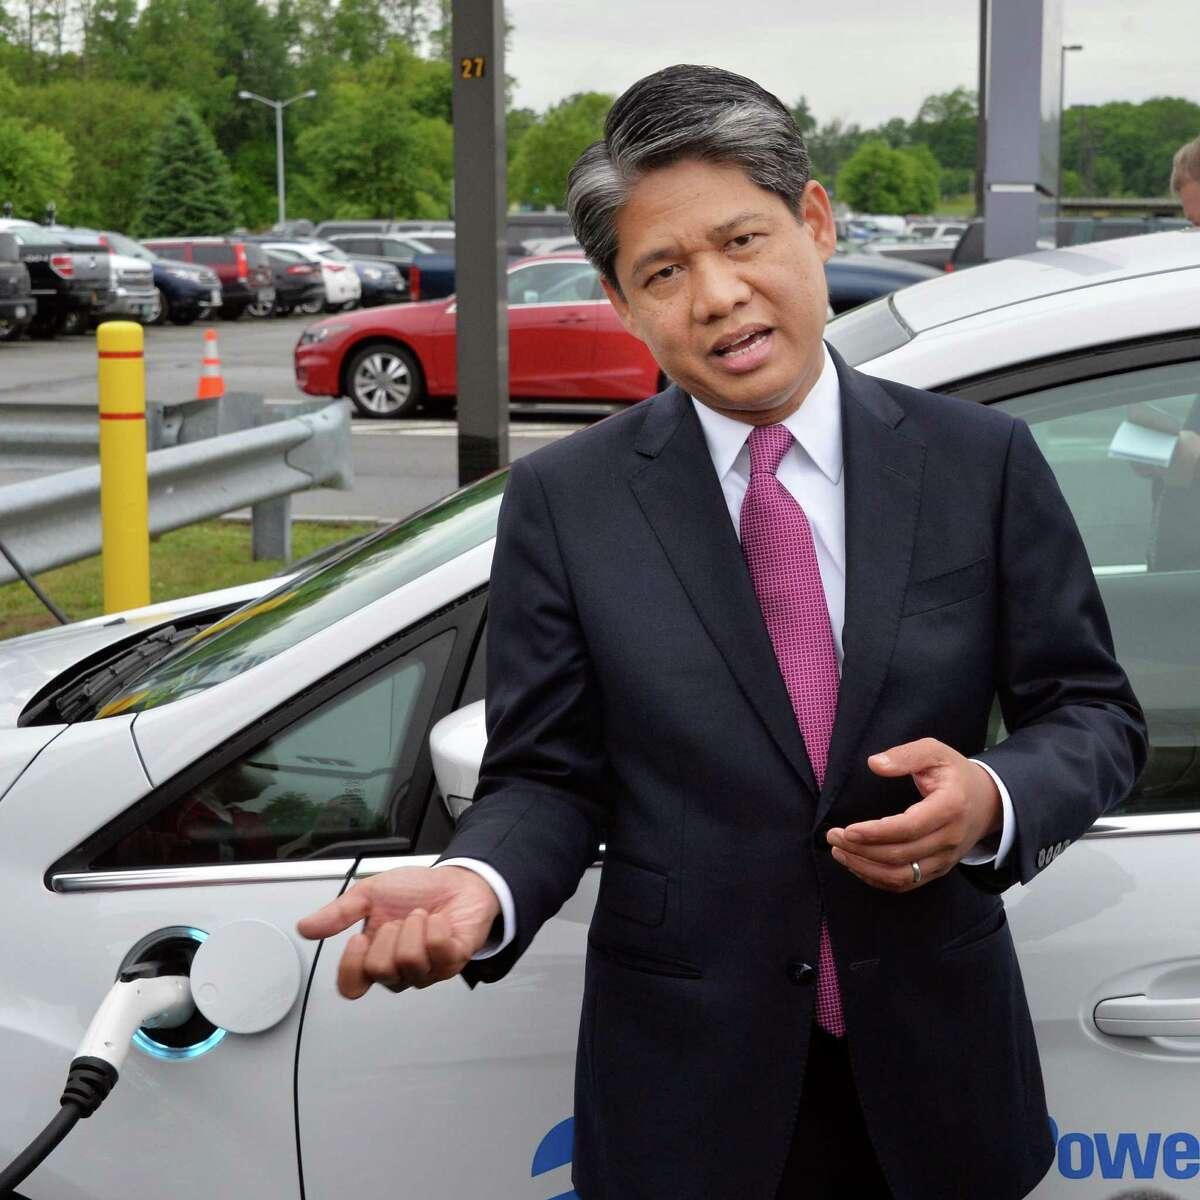 Gil Quiniones, president and CEO of NYPA, unveils new electric vehicle charging stations at Albany International Airport Wednesday, June 11, 2014, in Colonie, N.Y. (John Carl D'Annibale / Times Union)